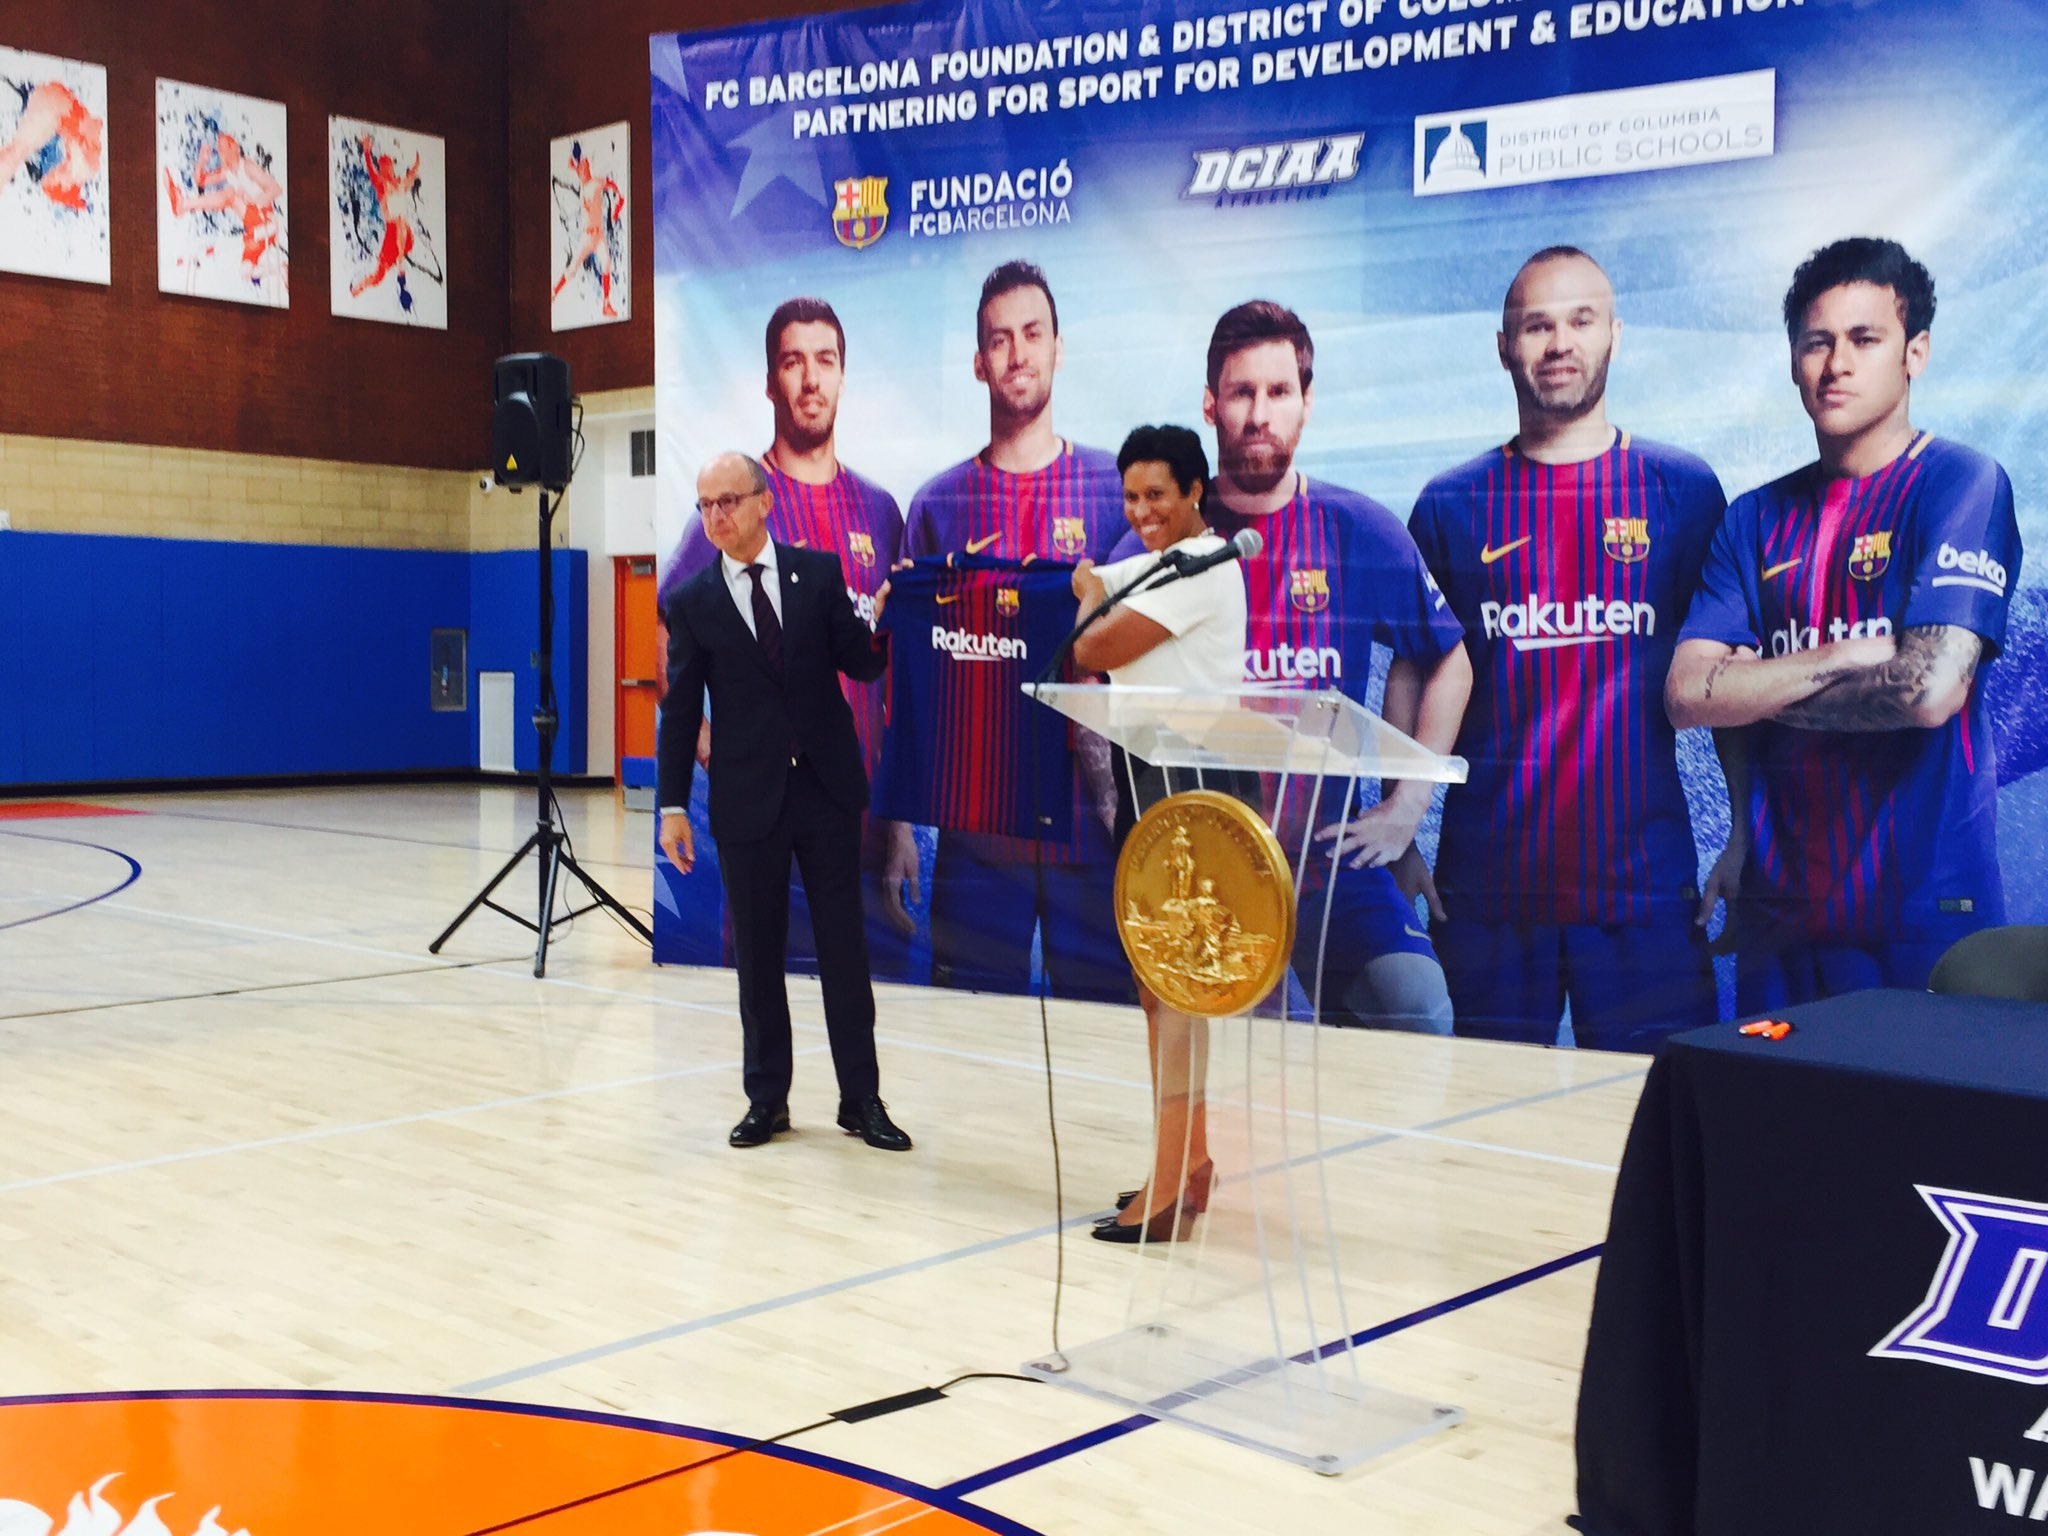 Photo of DCPS Partners With Pro Soccer Team